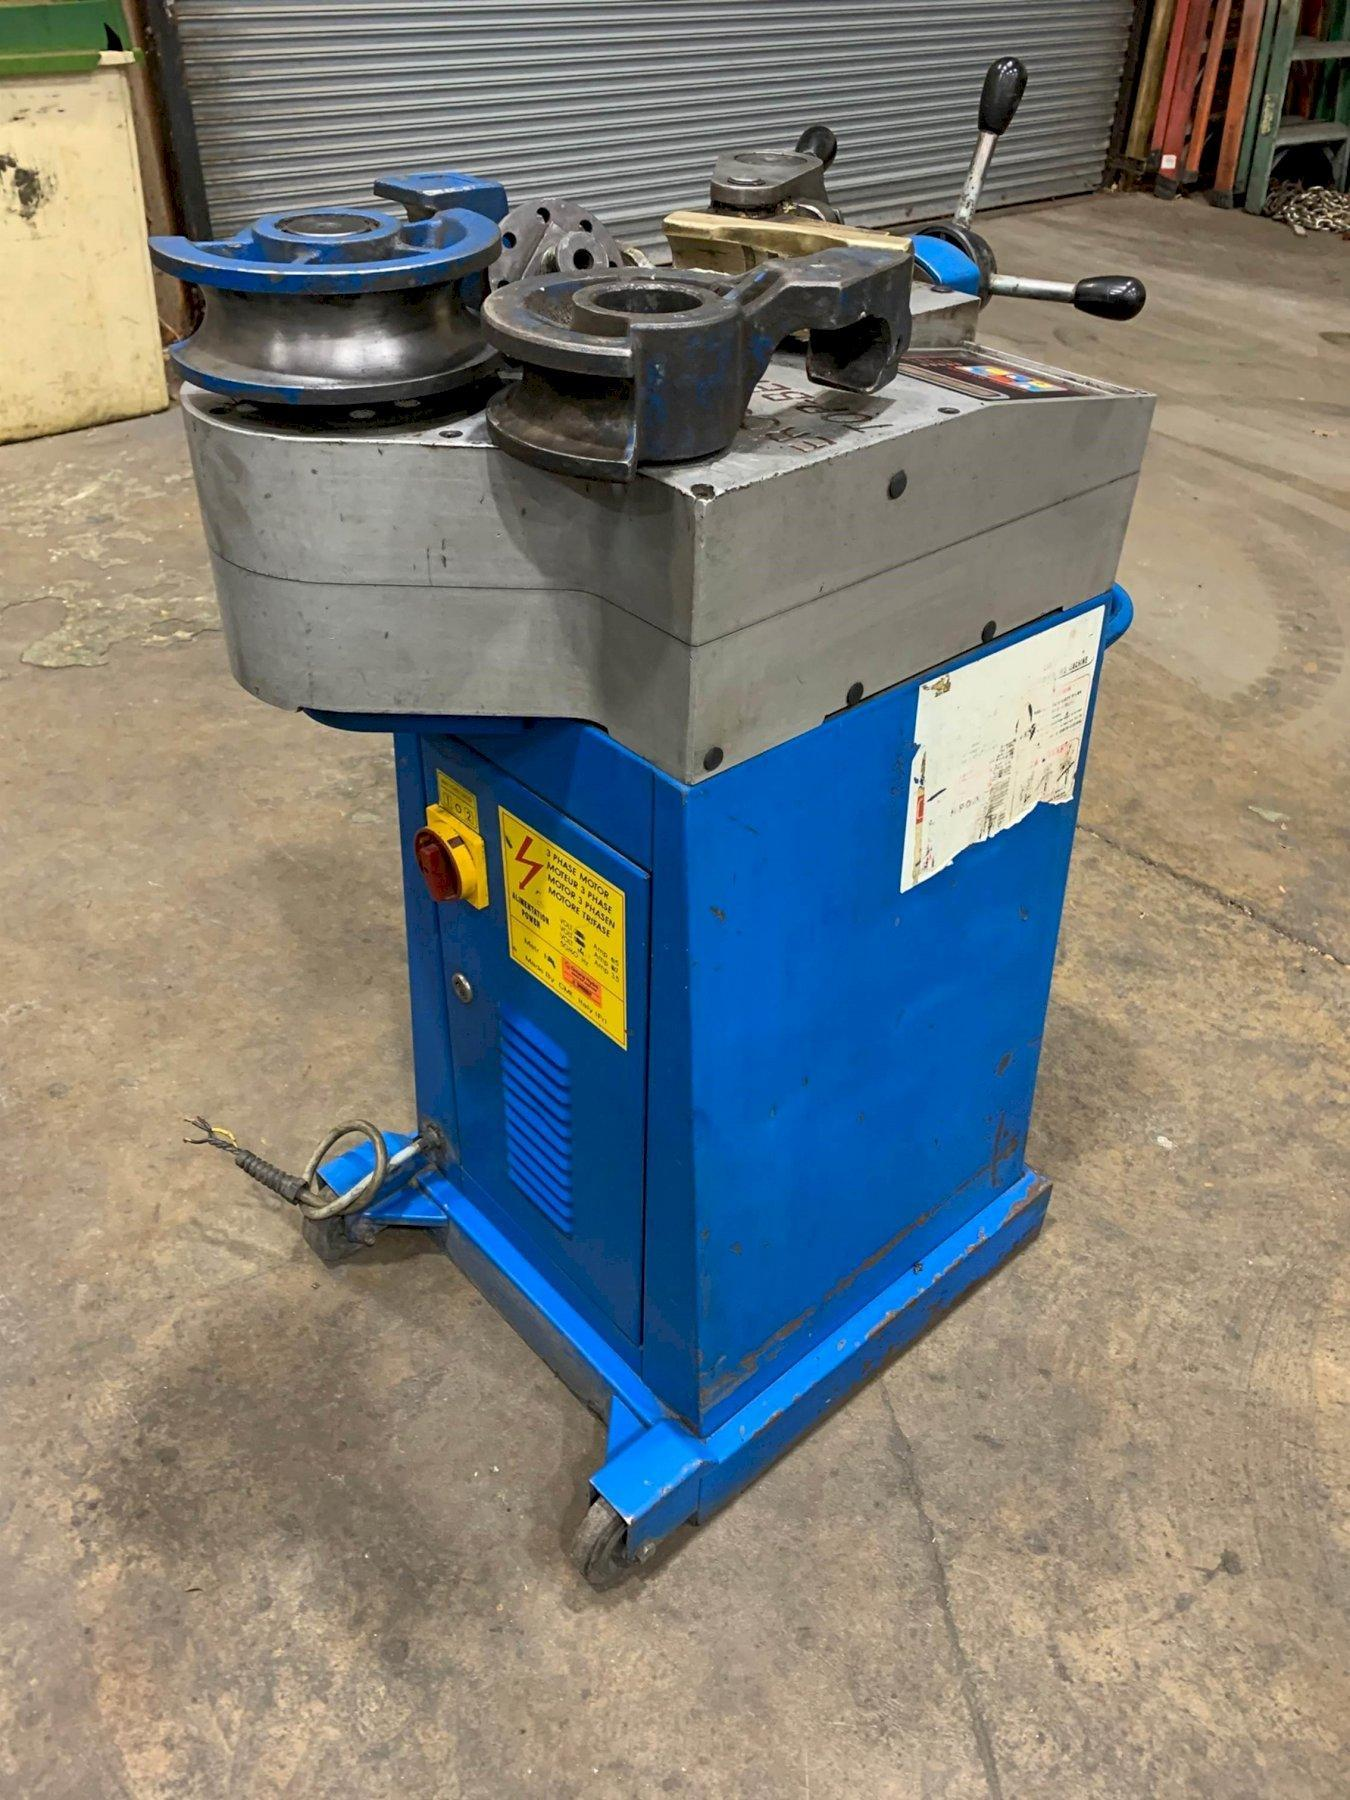 """USED ERCOLINA TOP BENDER 2"""" ROTARY DRAW PIPE AND TUBE BENDER, Stock #10829, Year: 1996"""